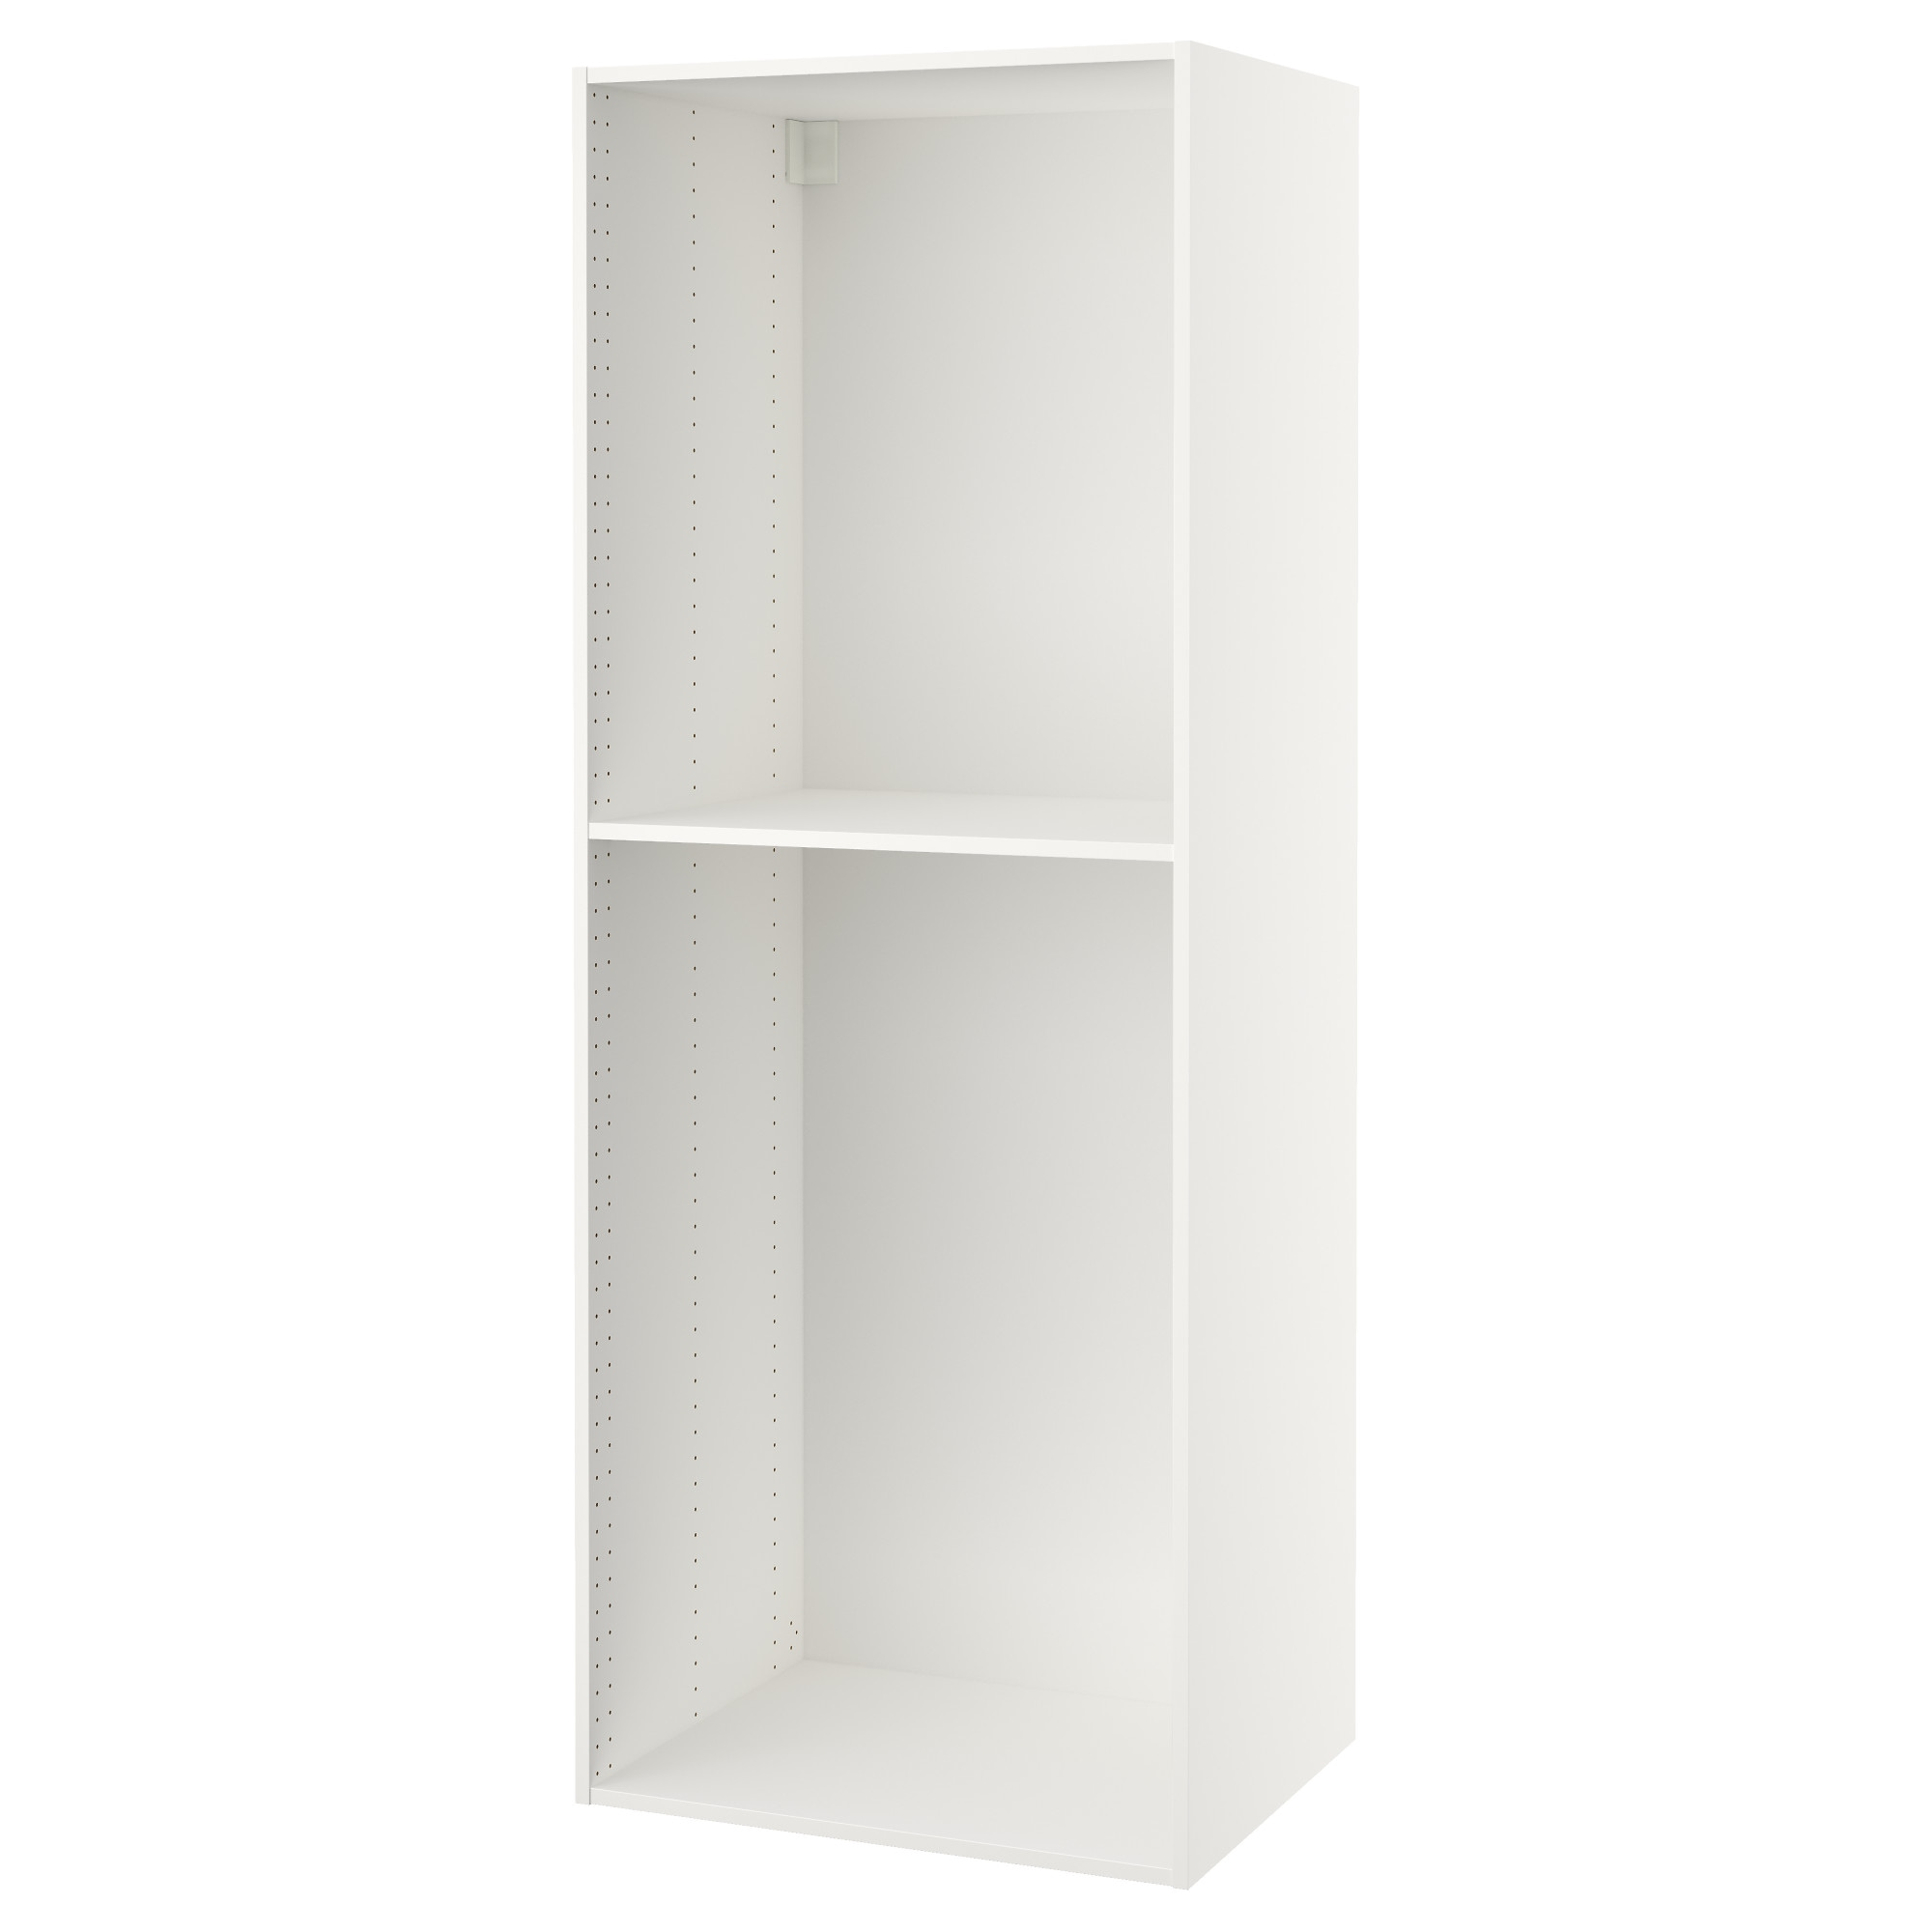 SEKTION high cabinet frame, white Depth without suspension rail: 23 5/8